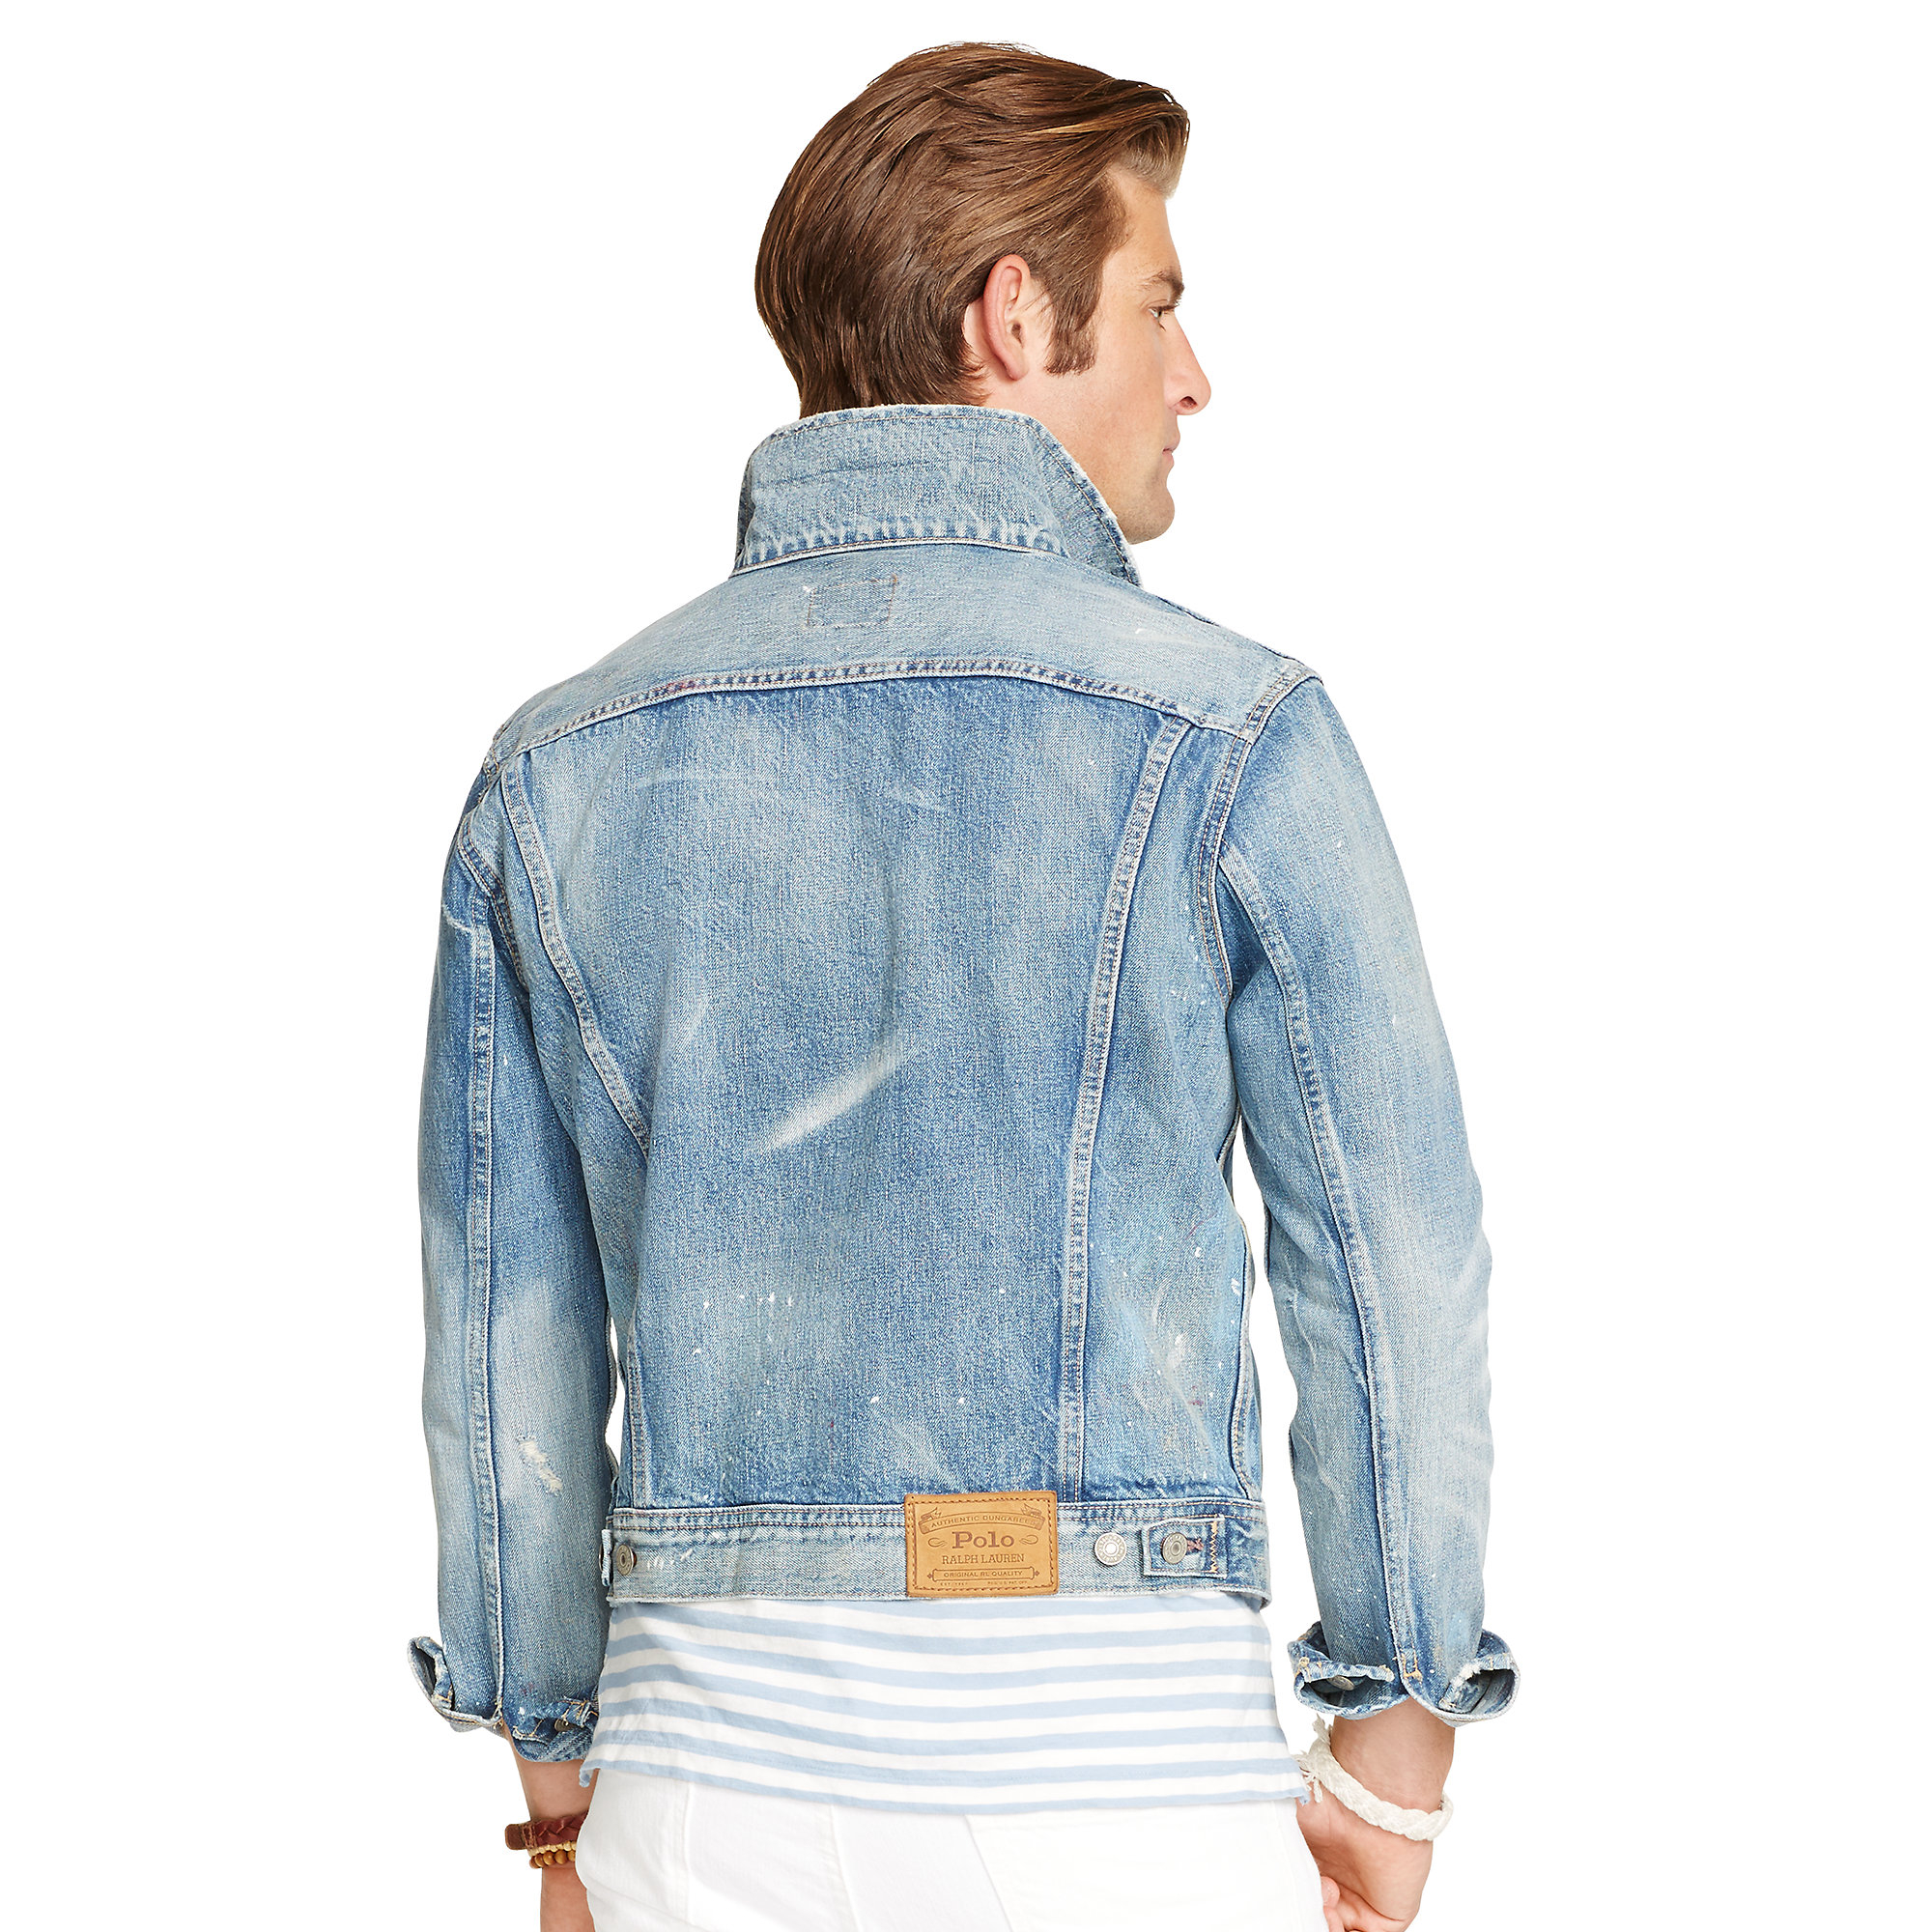 Lyst - Polo Ralph Lauren Distressed Denim Jacket in Blue for Men